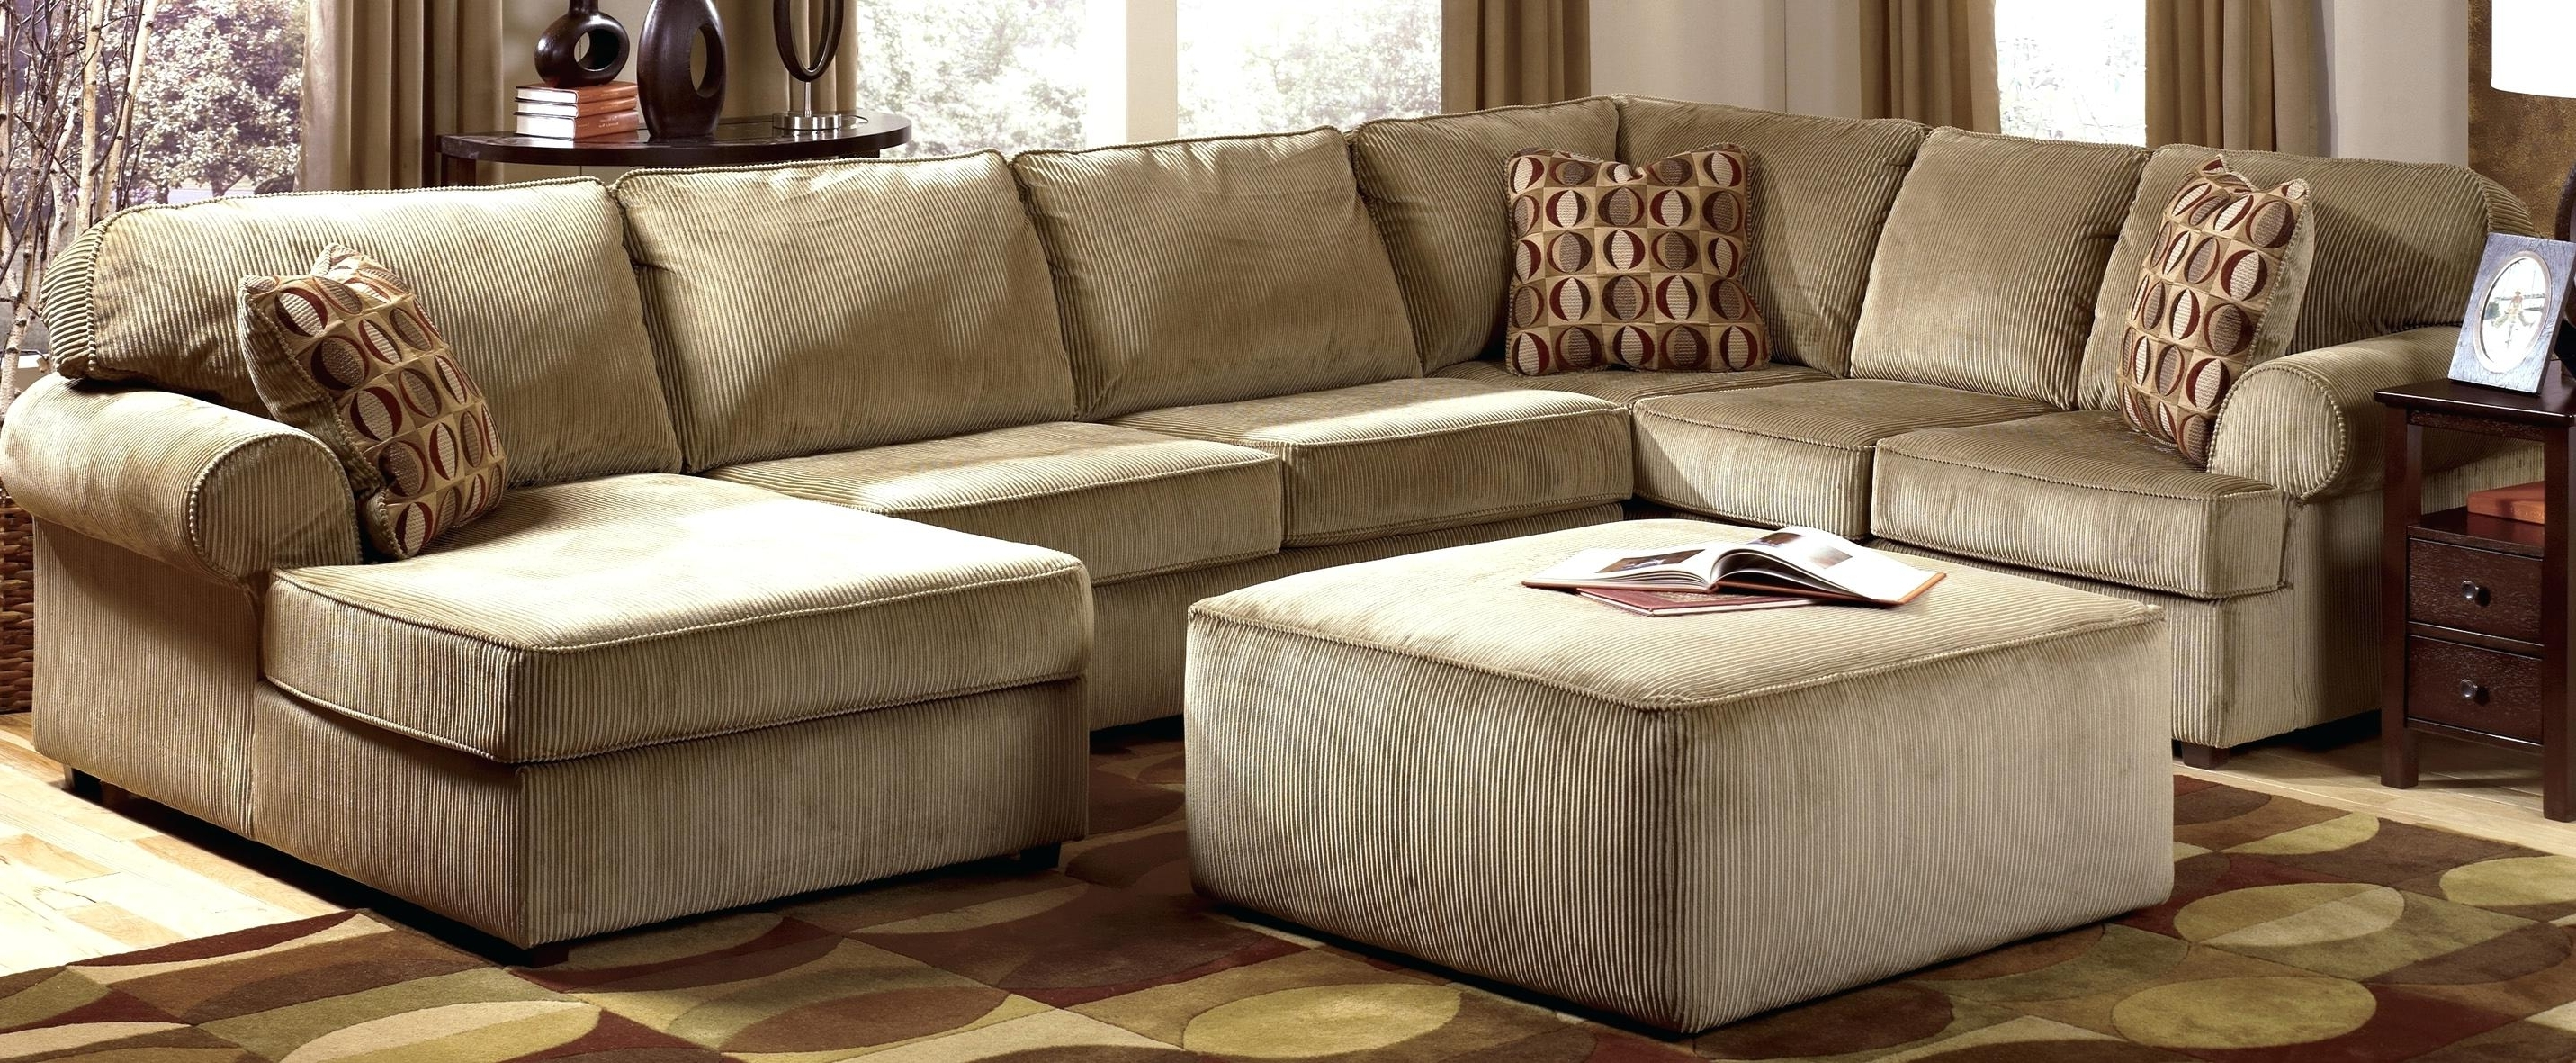 Kijiji Mississauga Sectional Sofas throughout Famous Sectional Sofas On Sale Sa Used For Ottawa Calgary Clearance